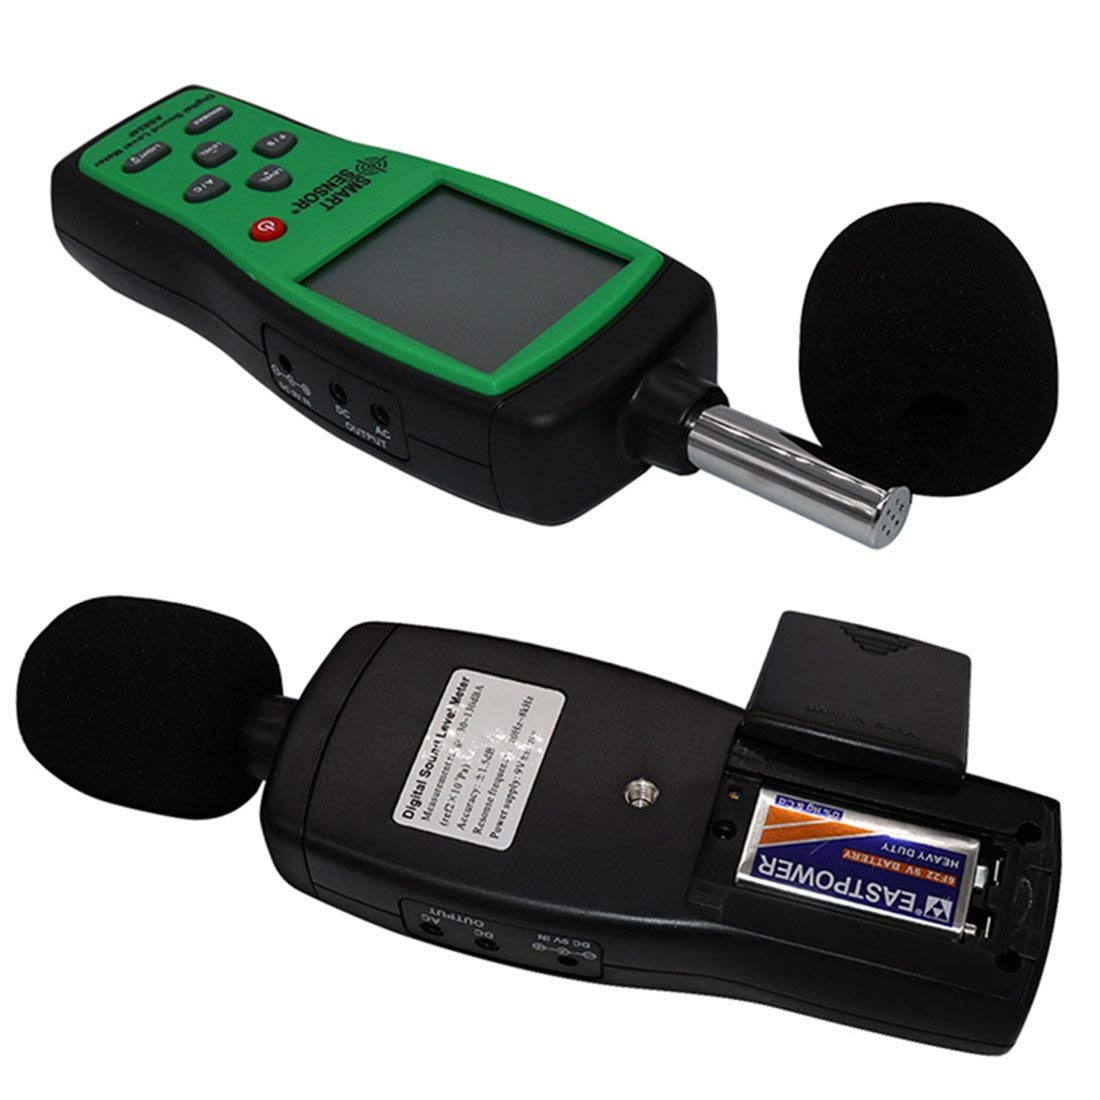 New AS804F Digital Noise Meter Handheld Noise Decibel Meter Decibel Meter Sound Level Meter Noise Tester